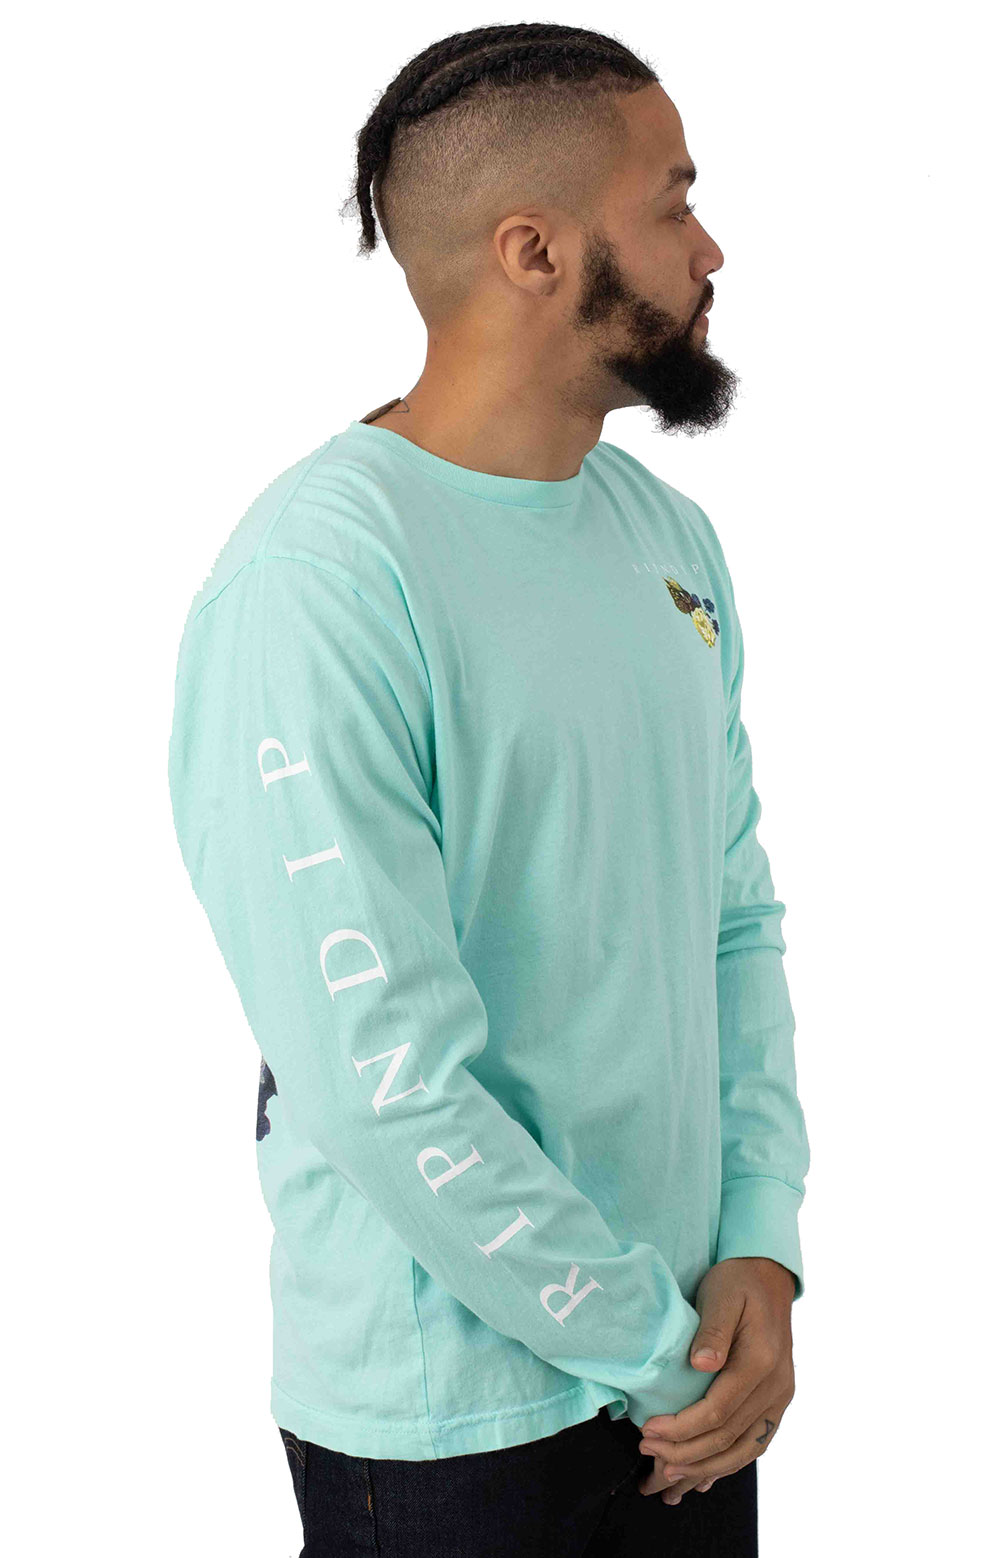 Heavenly Bodies L/S Shirt - Baby Blue 3